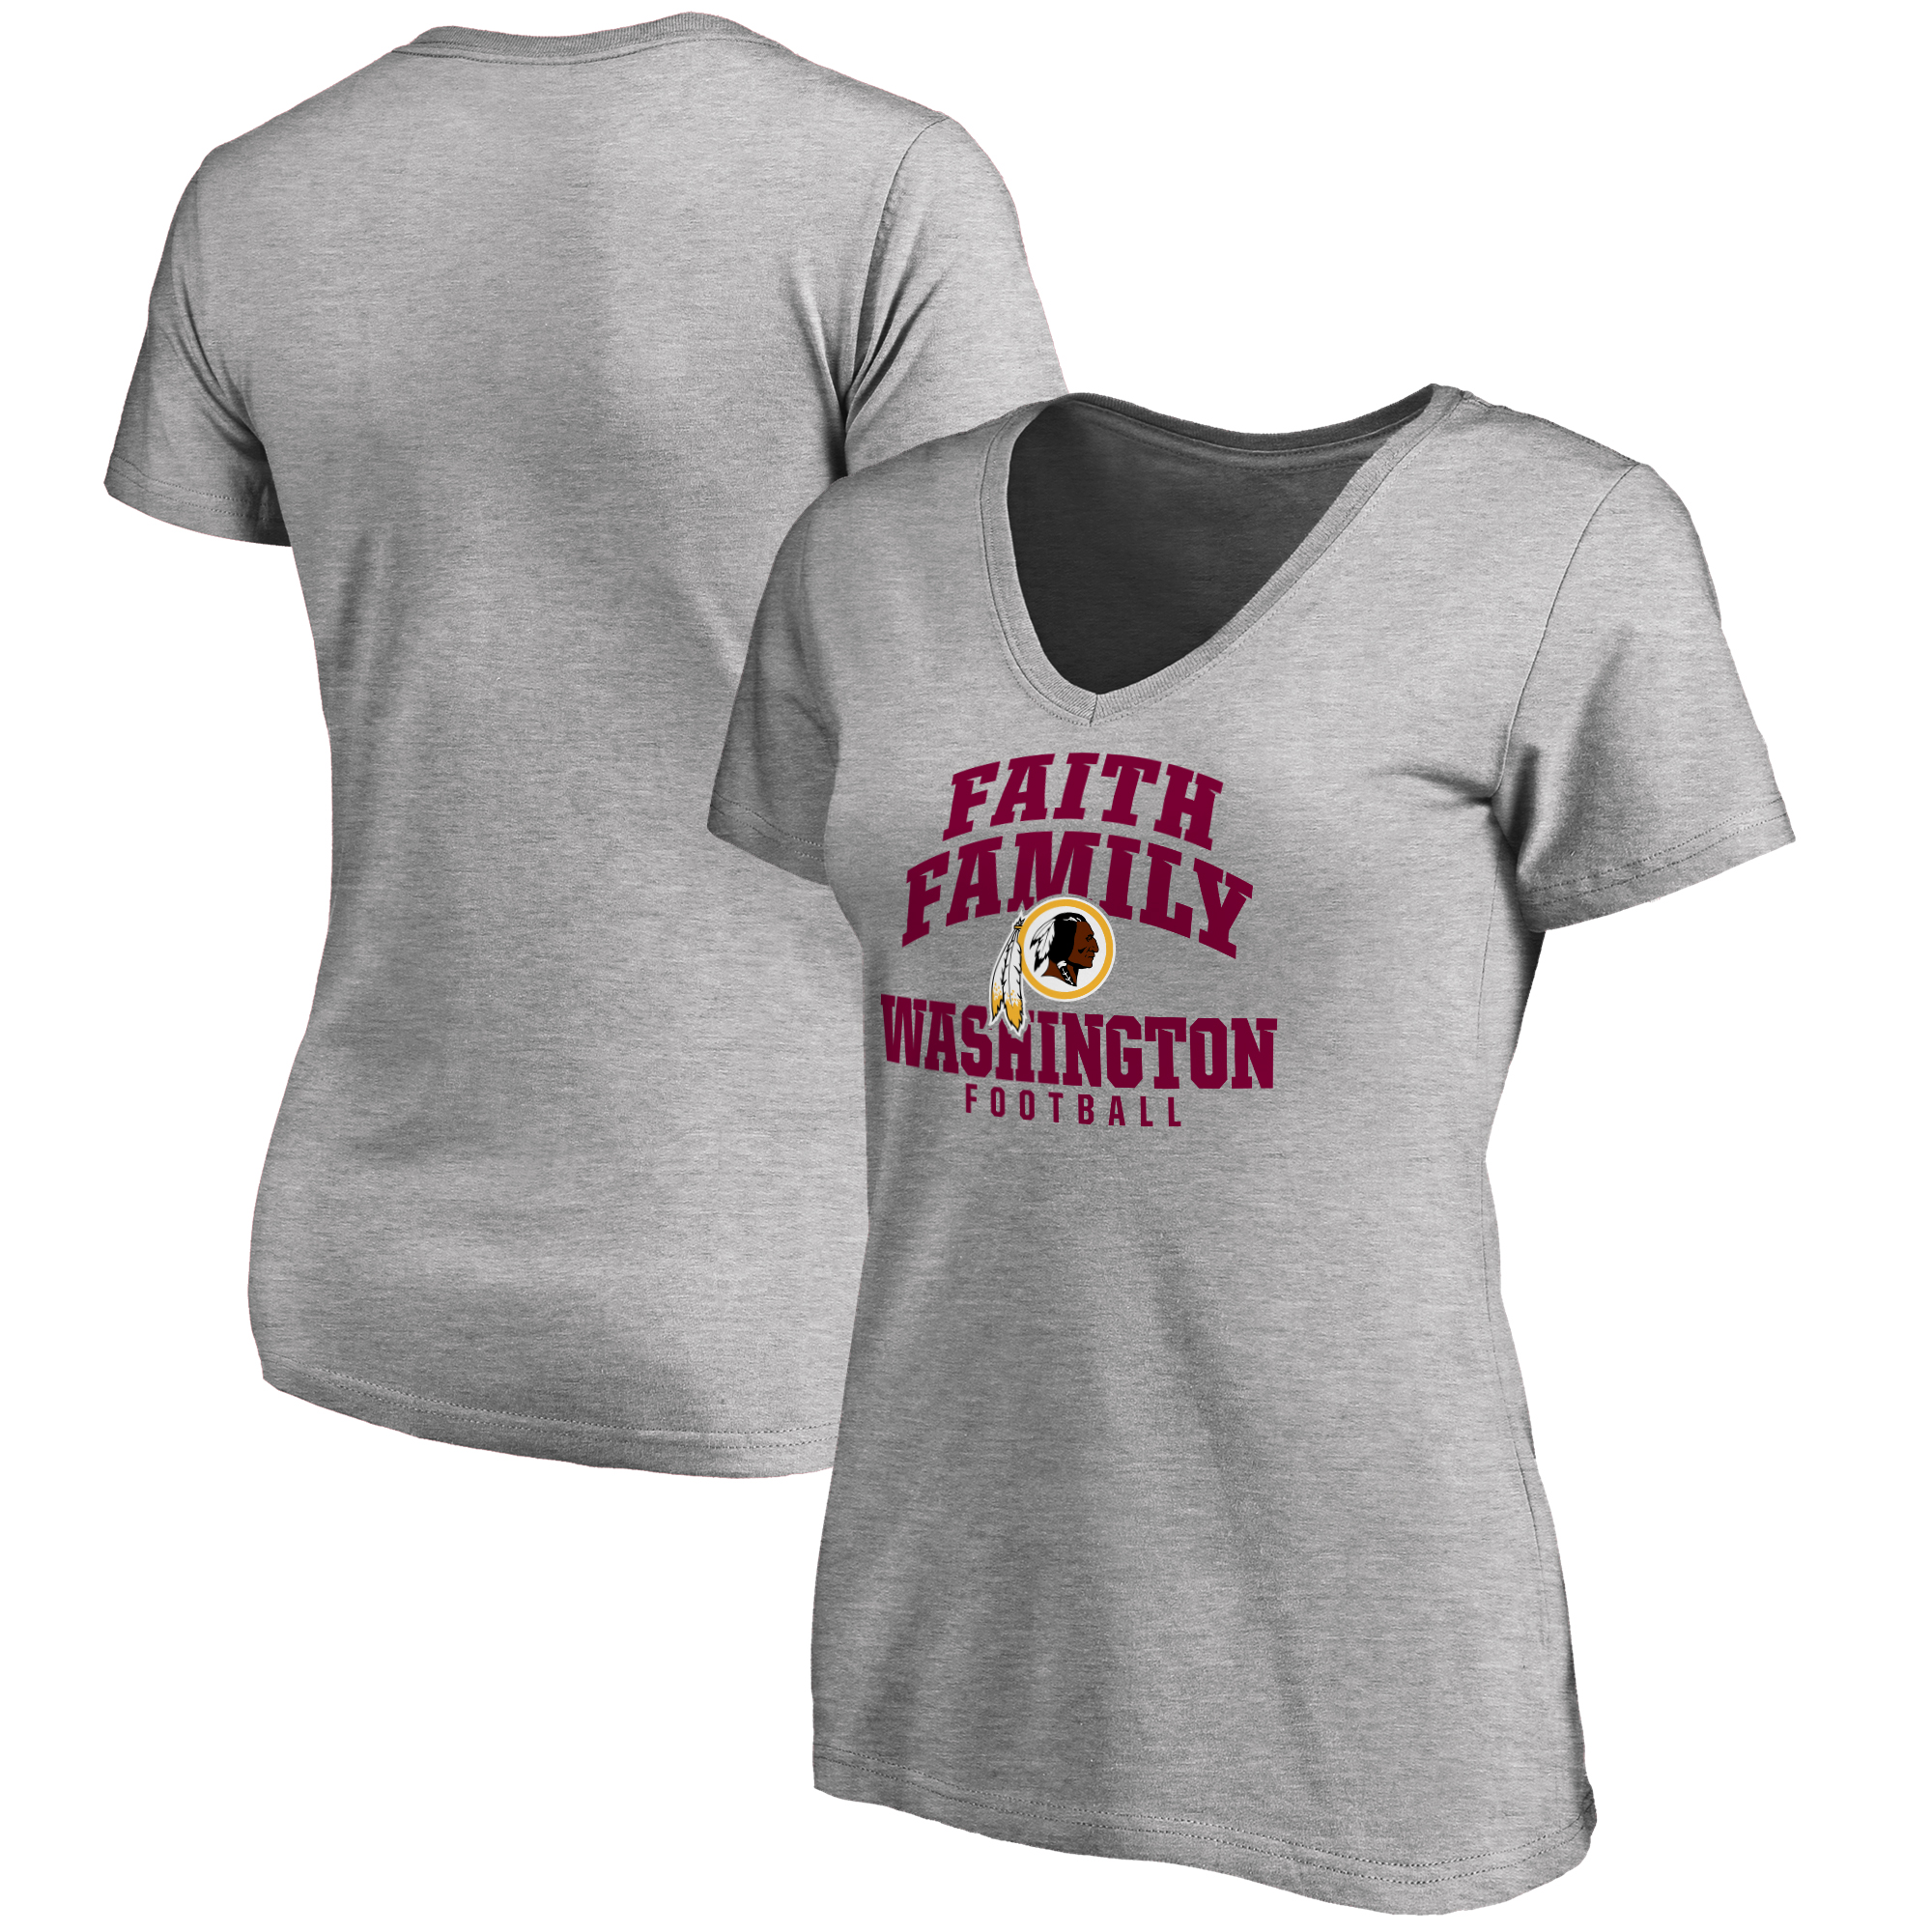 Washington Redskins NFL Pro Line Women's Faith Family T-Shirt - Heather Gray